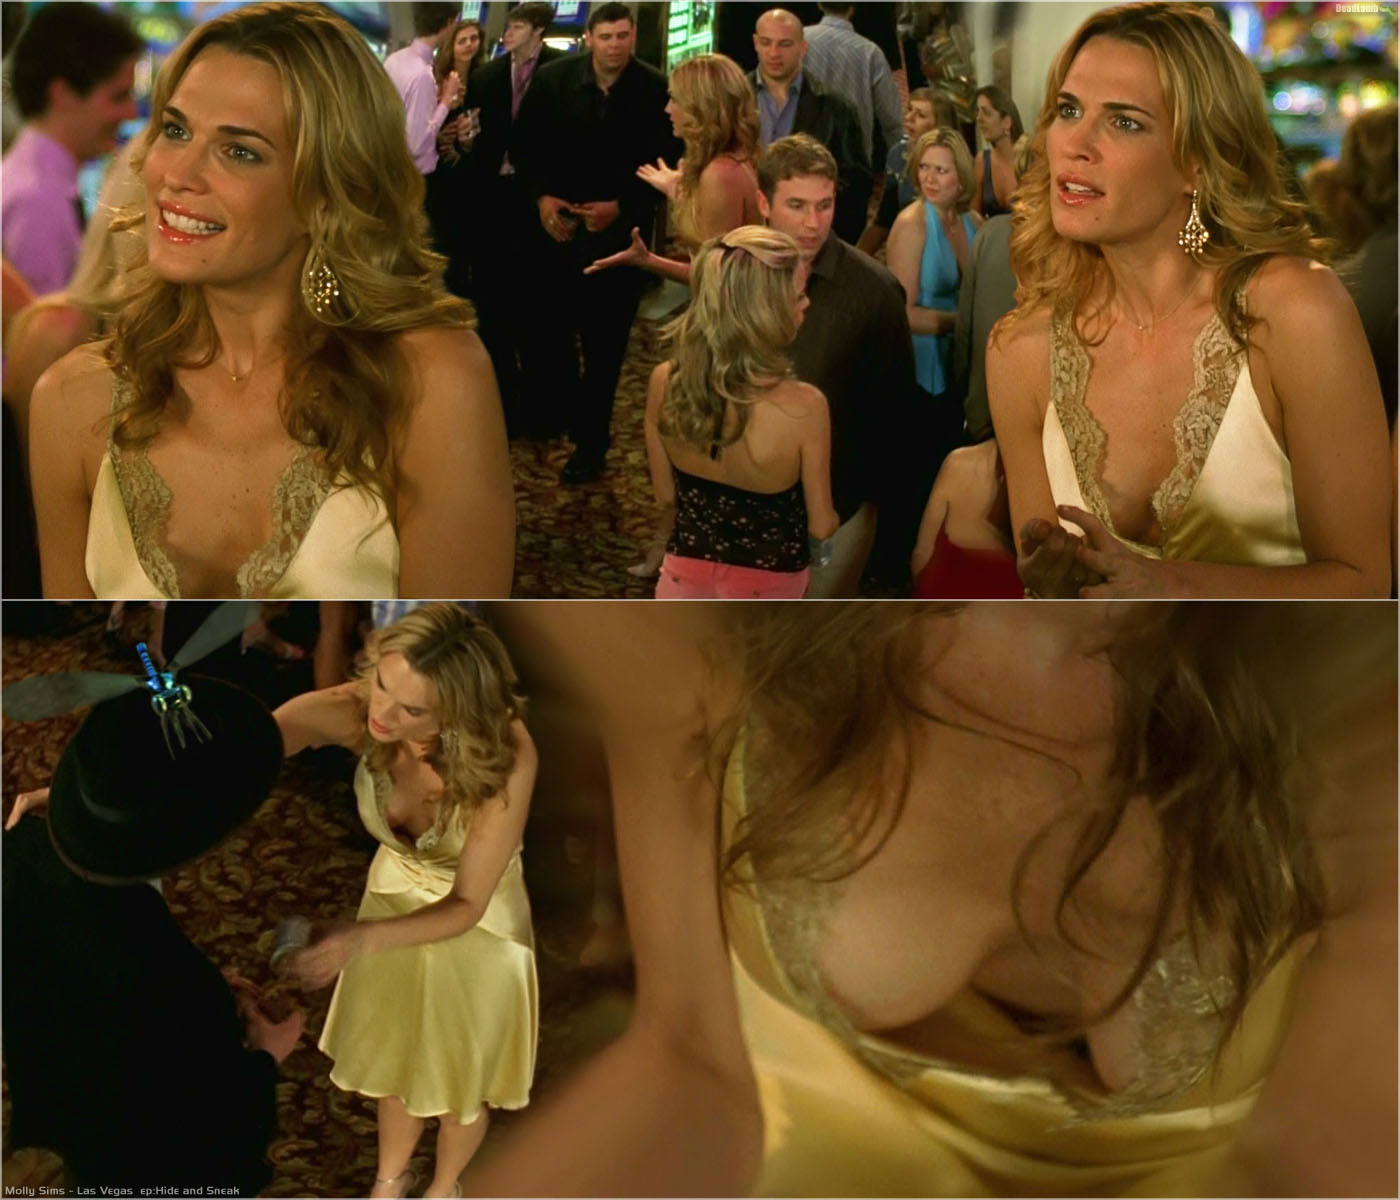 Molly Sims / Nude foto 1